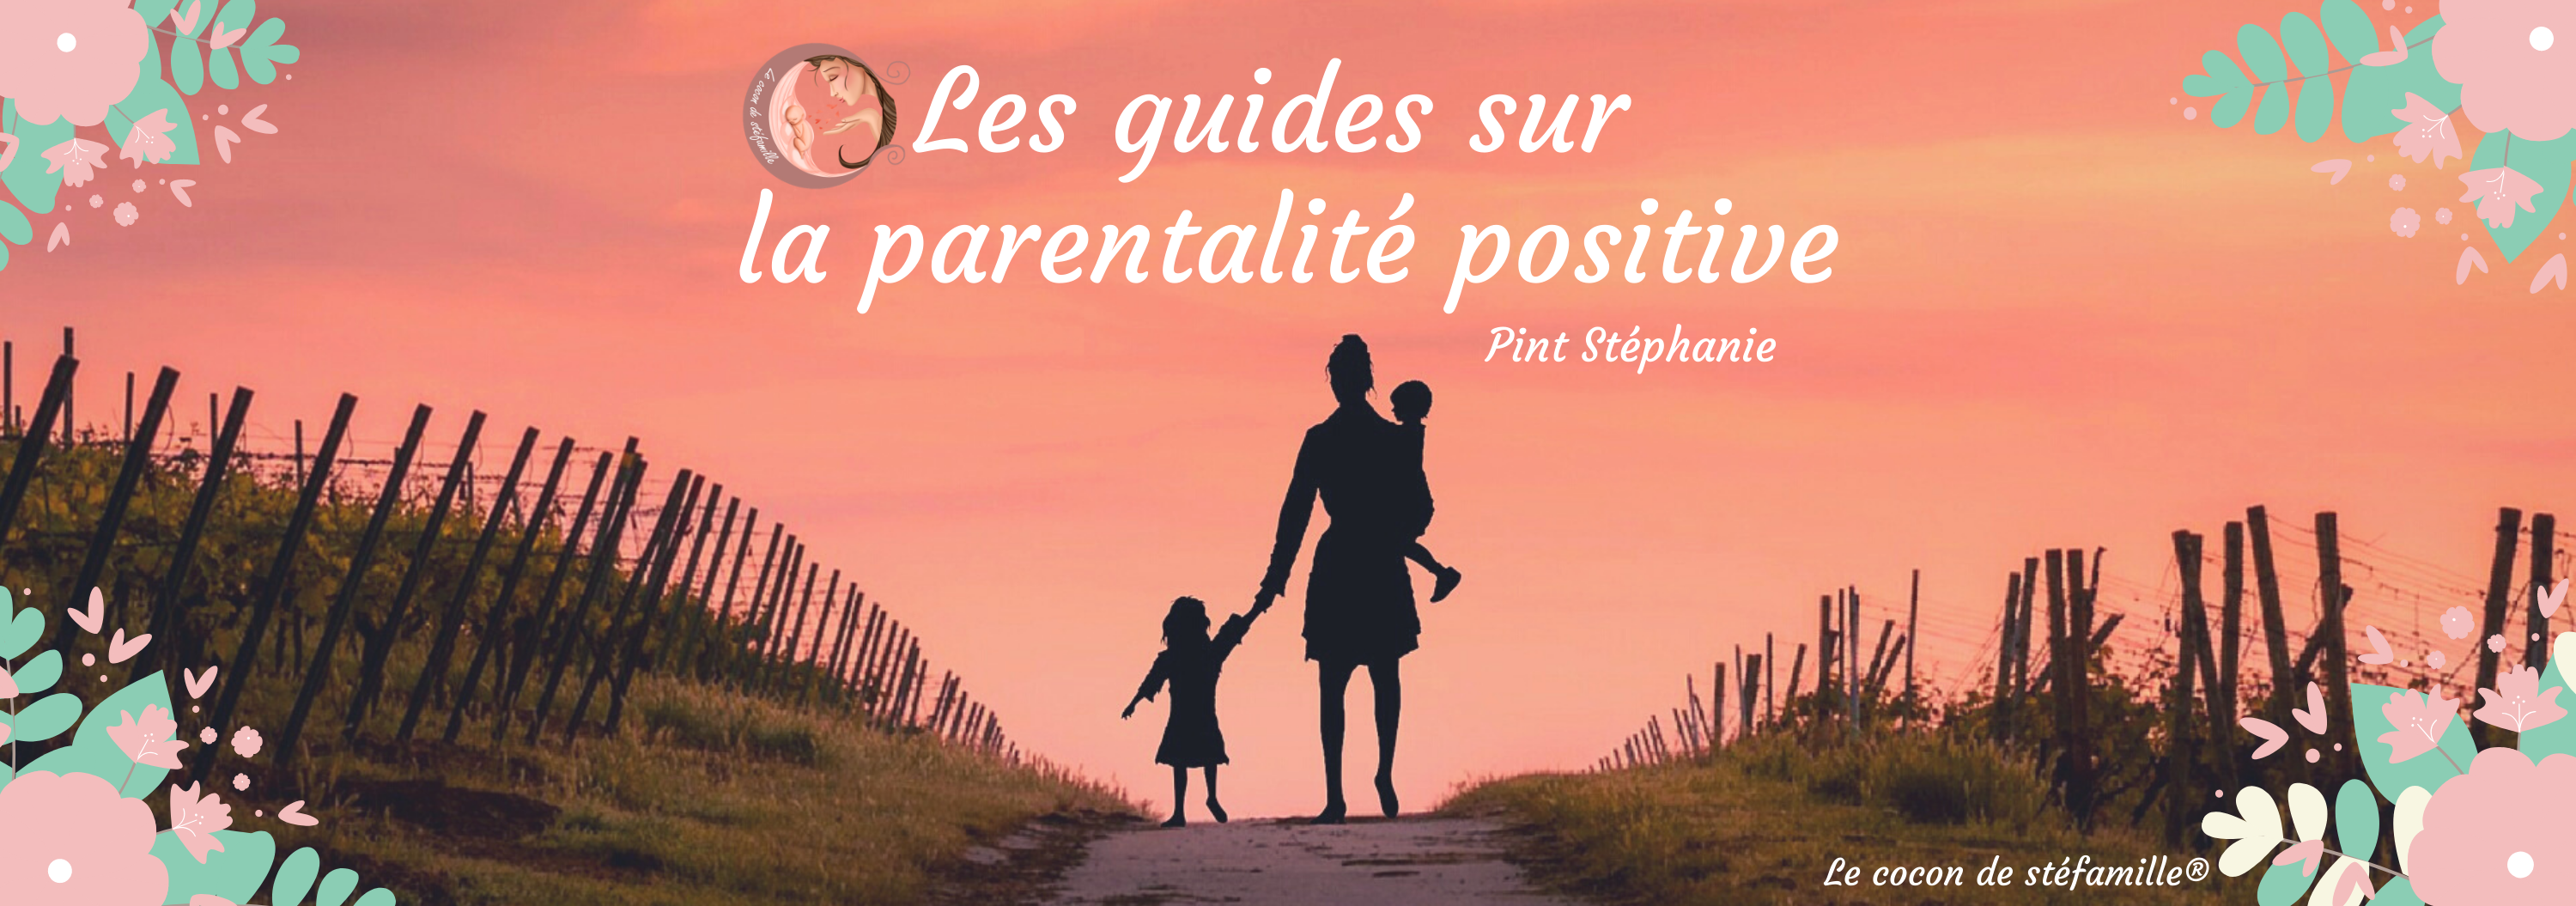 articles parentalité, article parentalité positive, etre parent, guide parent, conférence parentalité, parentalité positive, article maternage proximal, article motricité libre